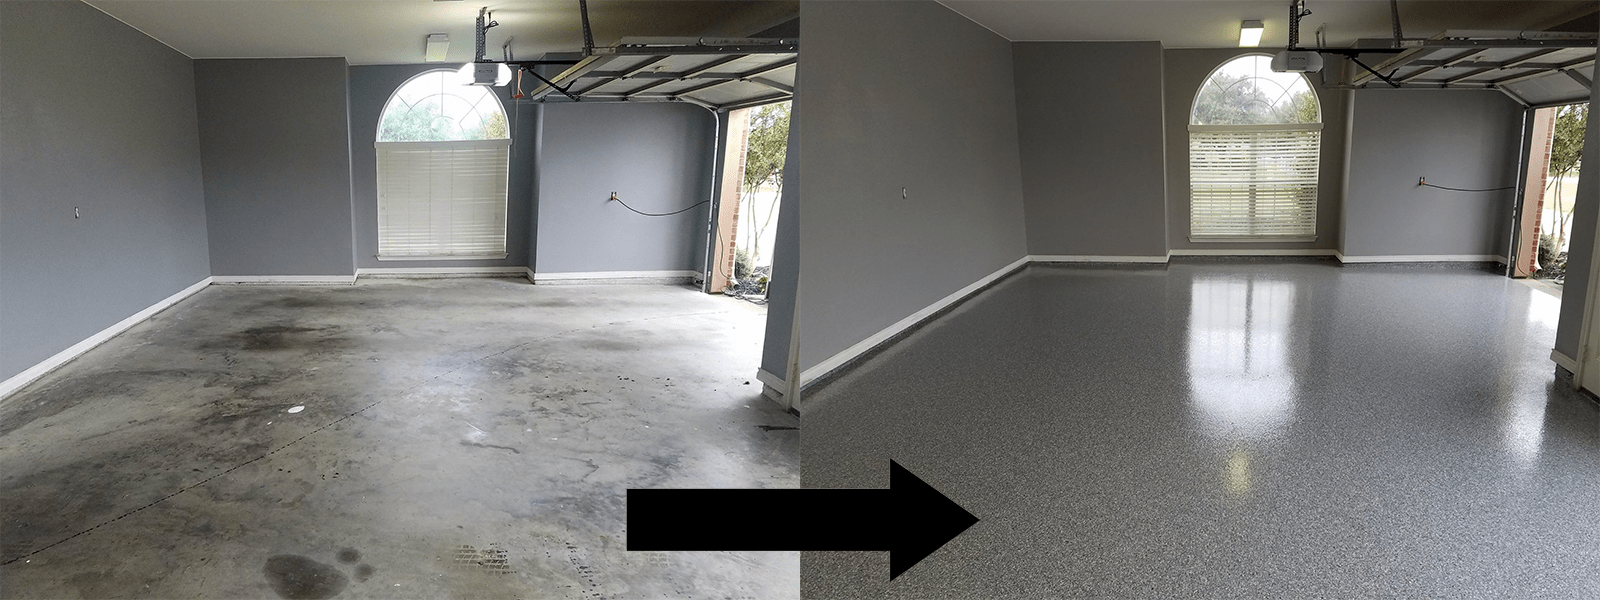 Garage Floors Dfw Before And After Epoxy Garage Floor Paint Garage Floor Flooring Contractor